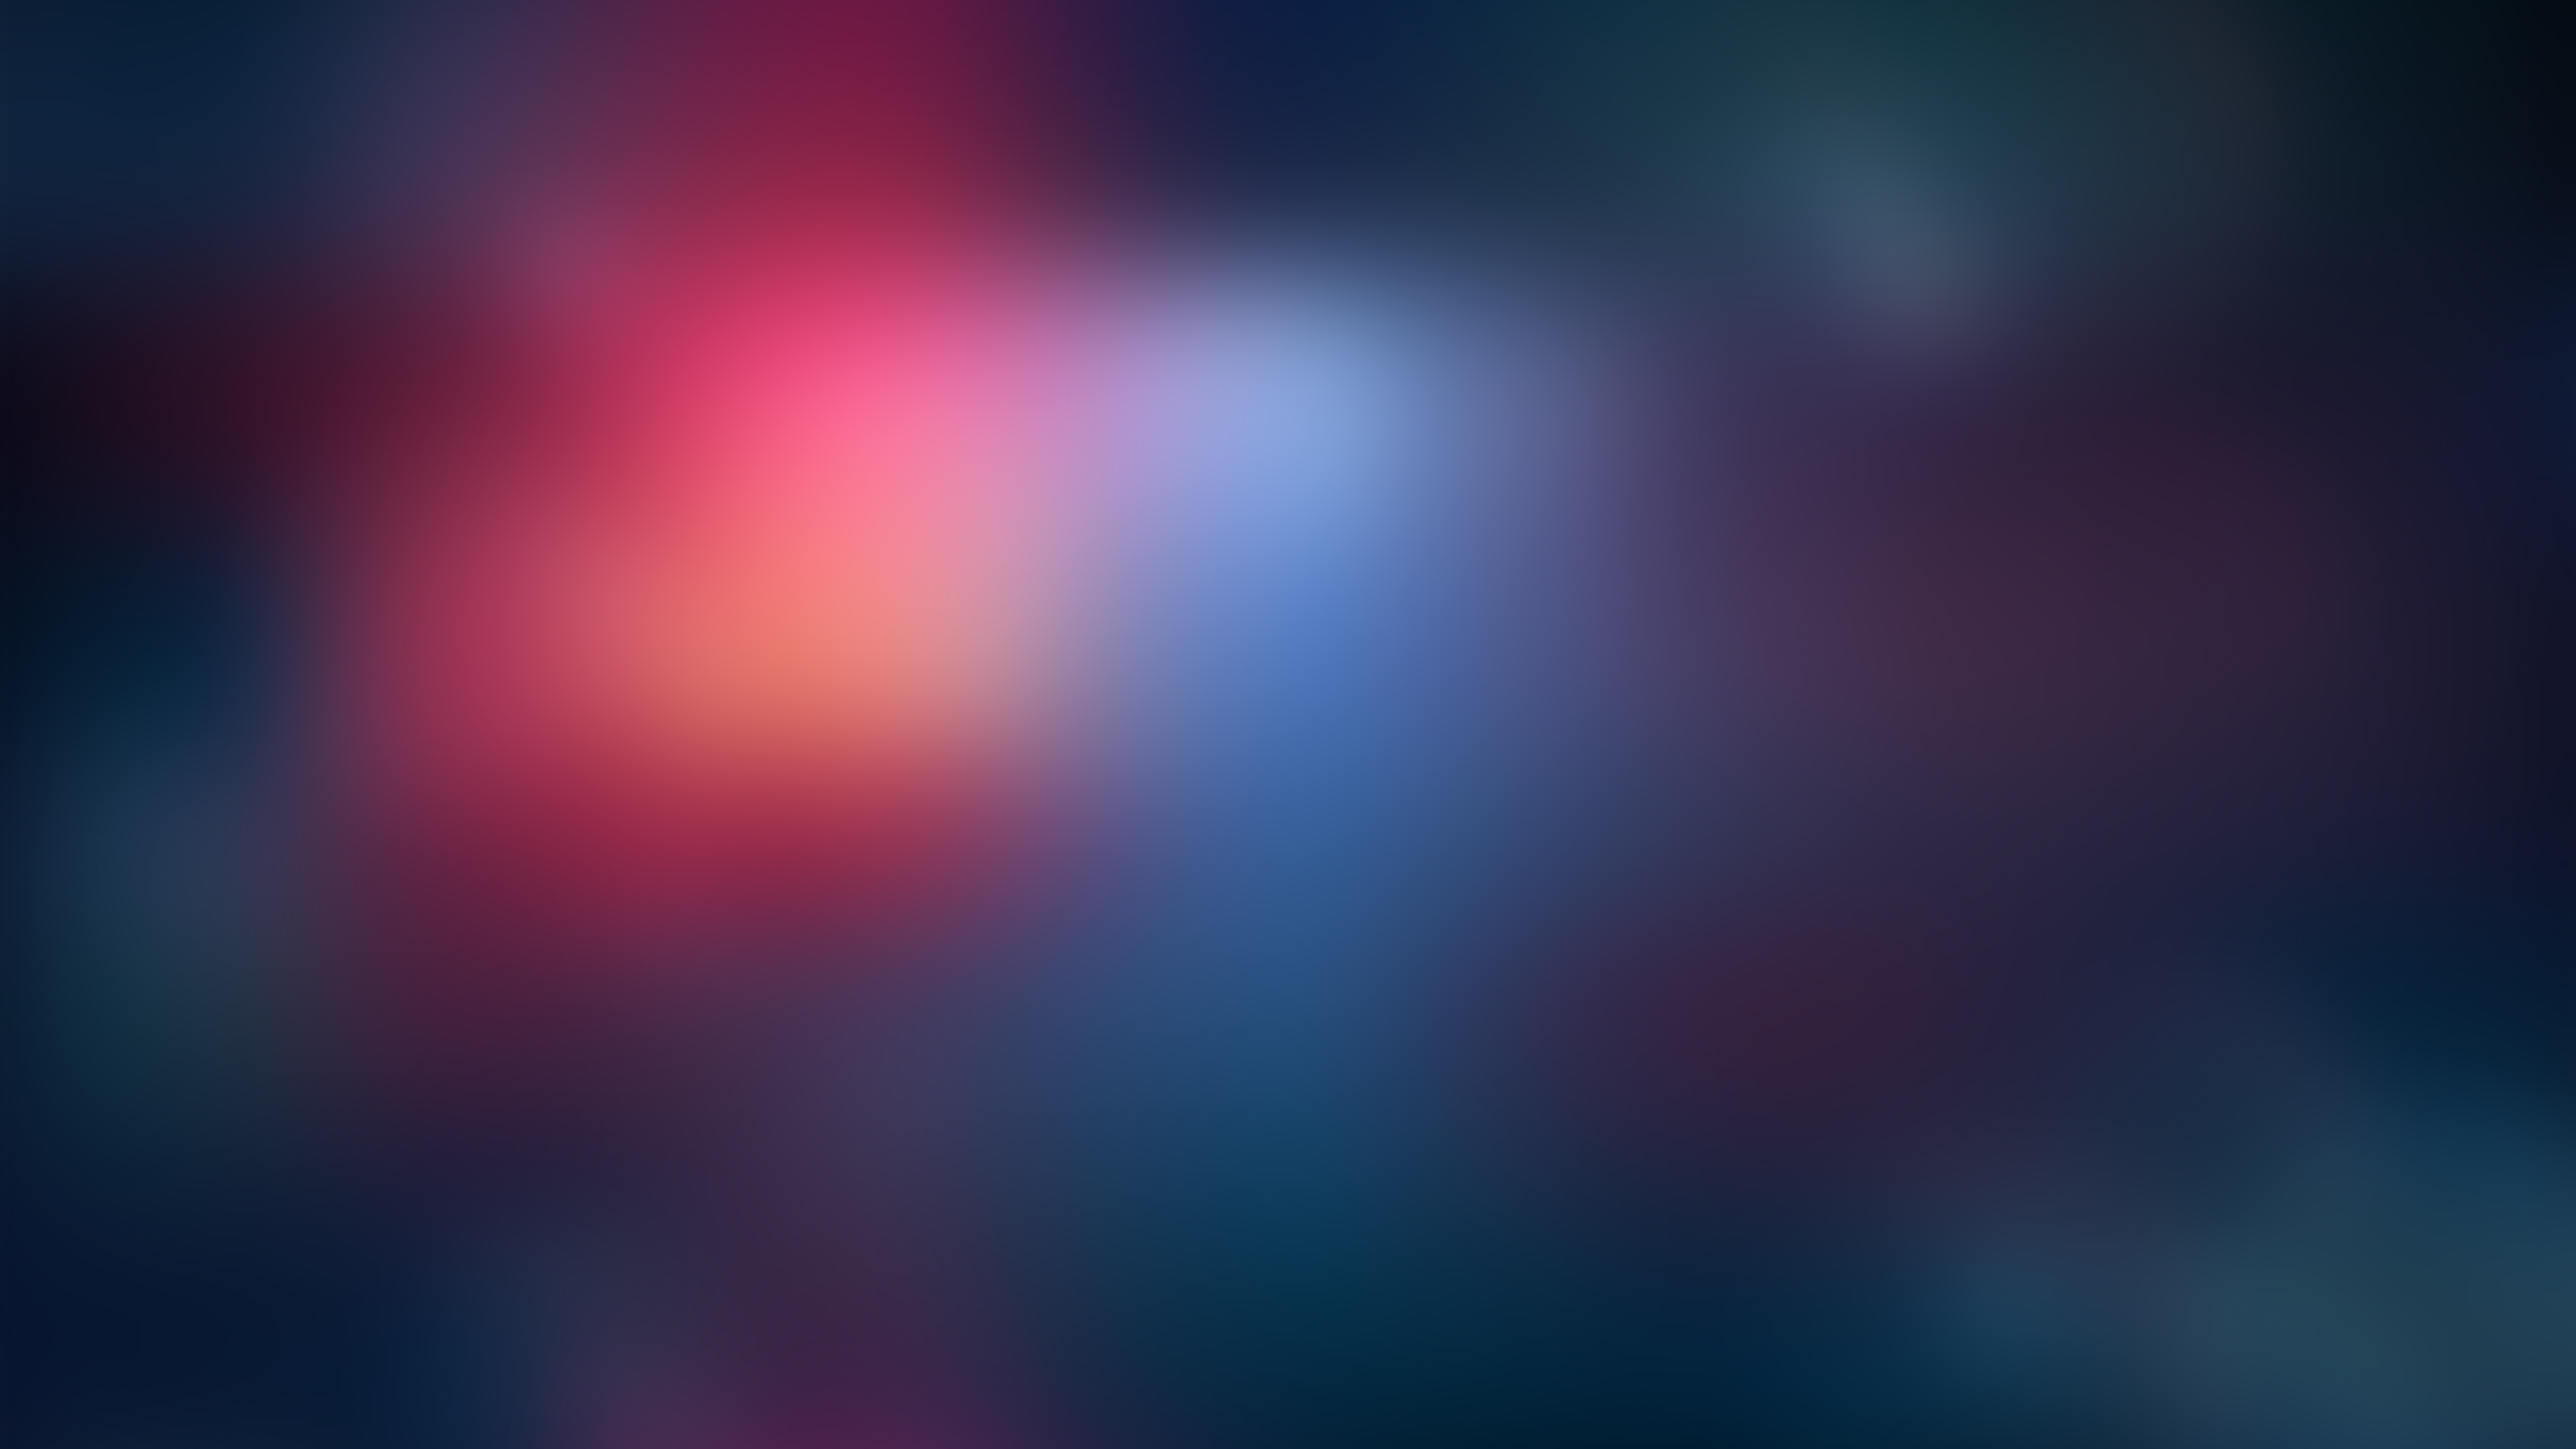 General 3840x2160 lights abstract blue purple red blurred